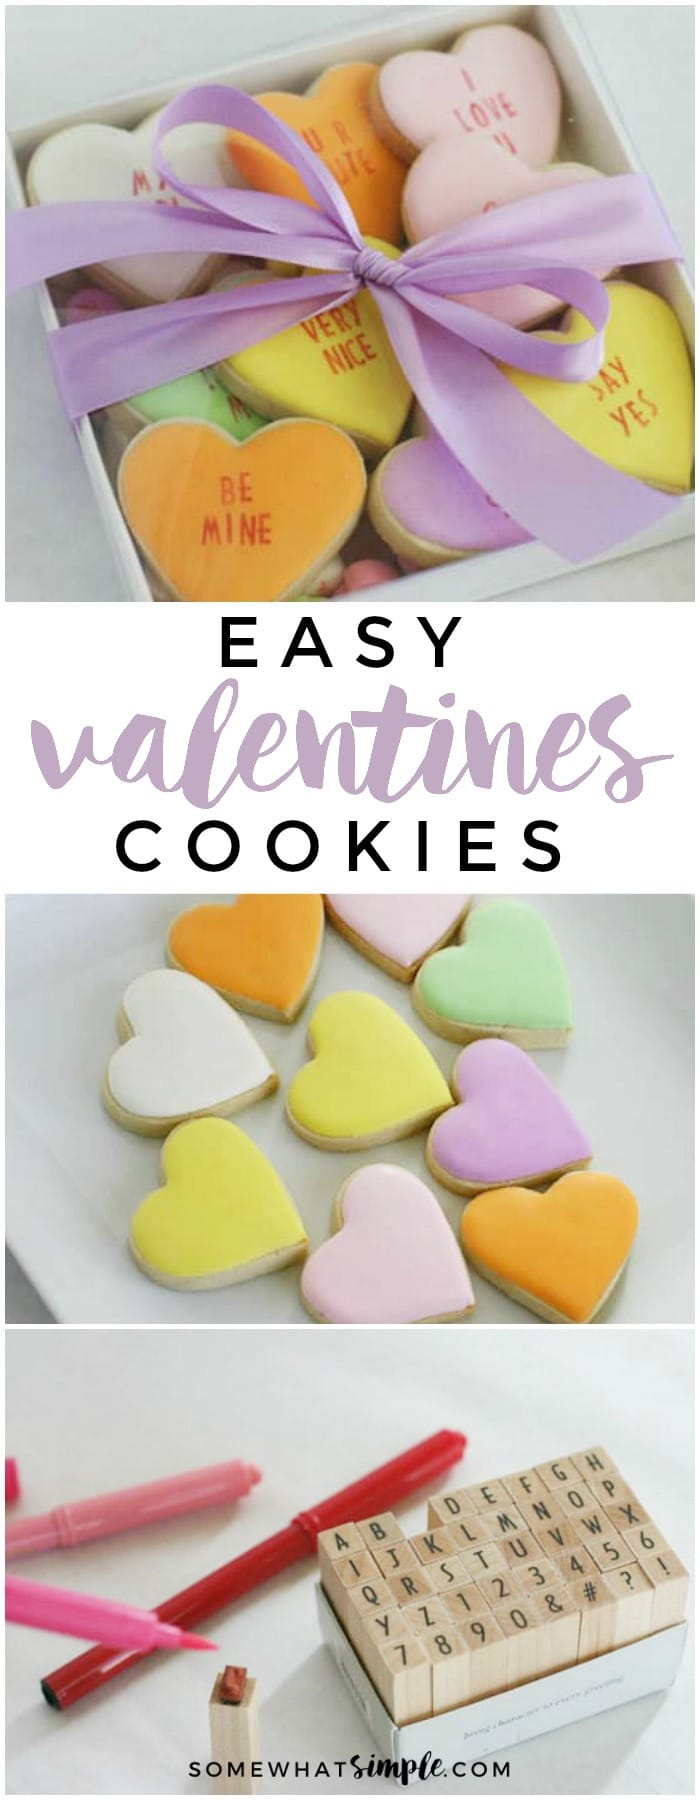 Conversation Hearts Valentines Day cookies are super simple to make and they taste delicious!!